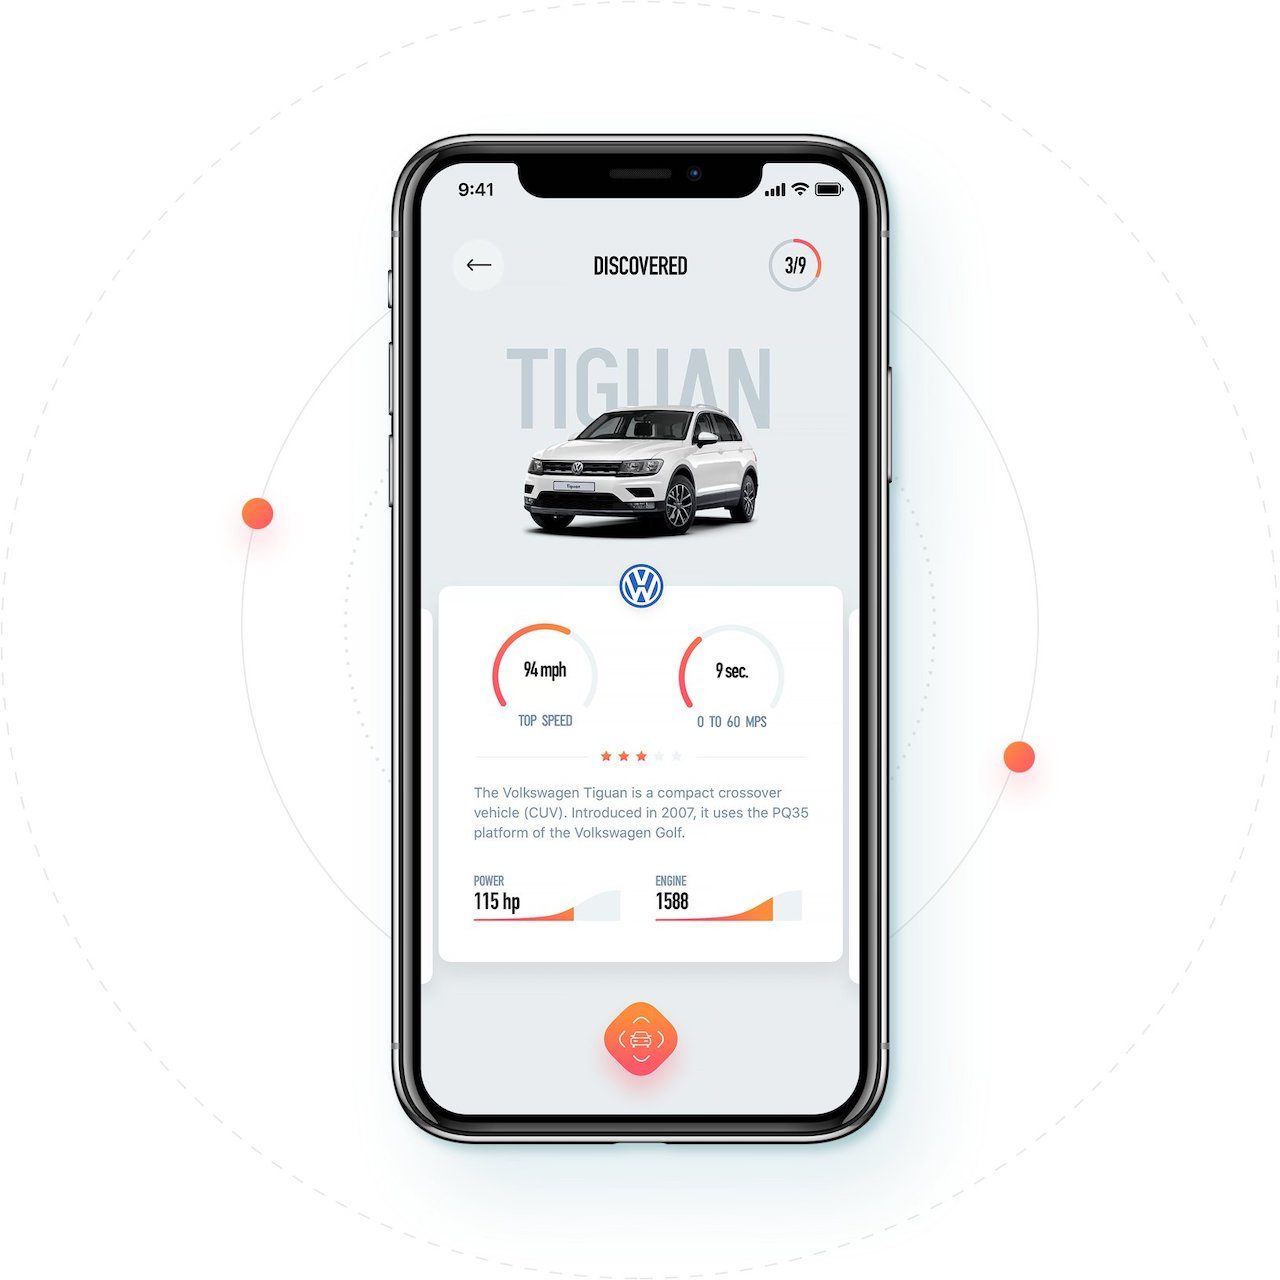 CarLens, A Smartphone App That Uses AI Machine Learning to Instantly Identify Different Cars on the Street